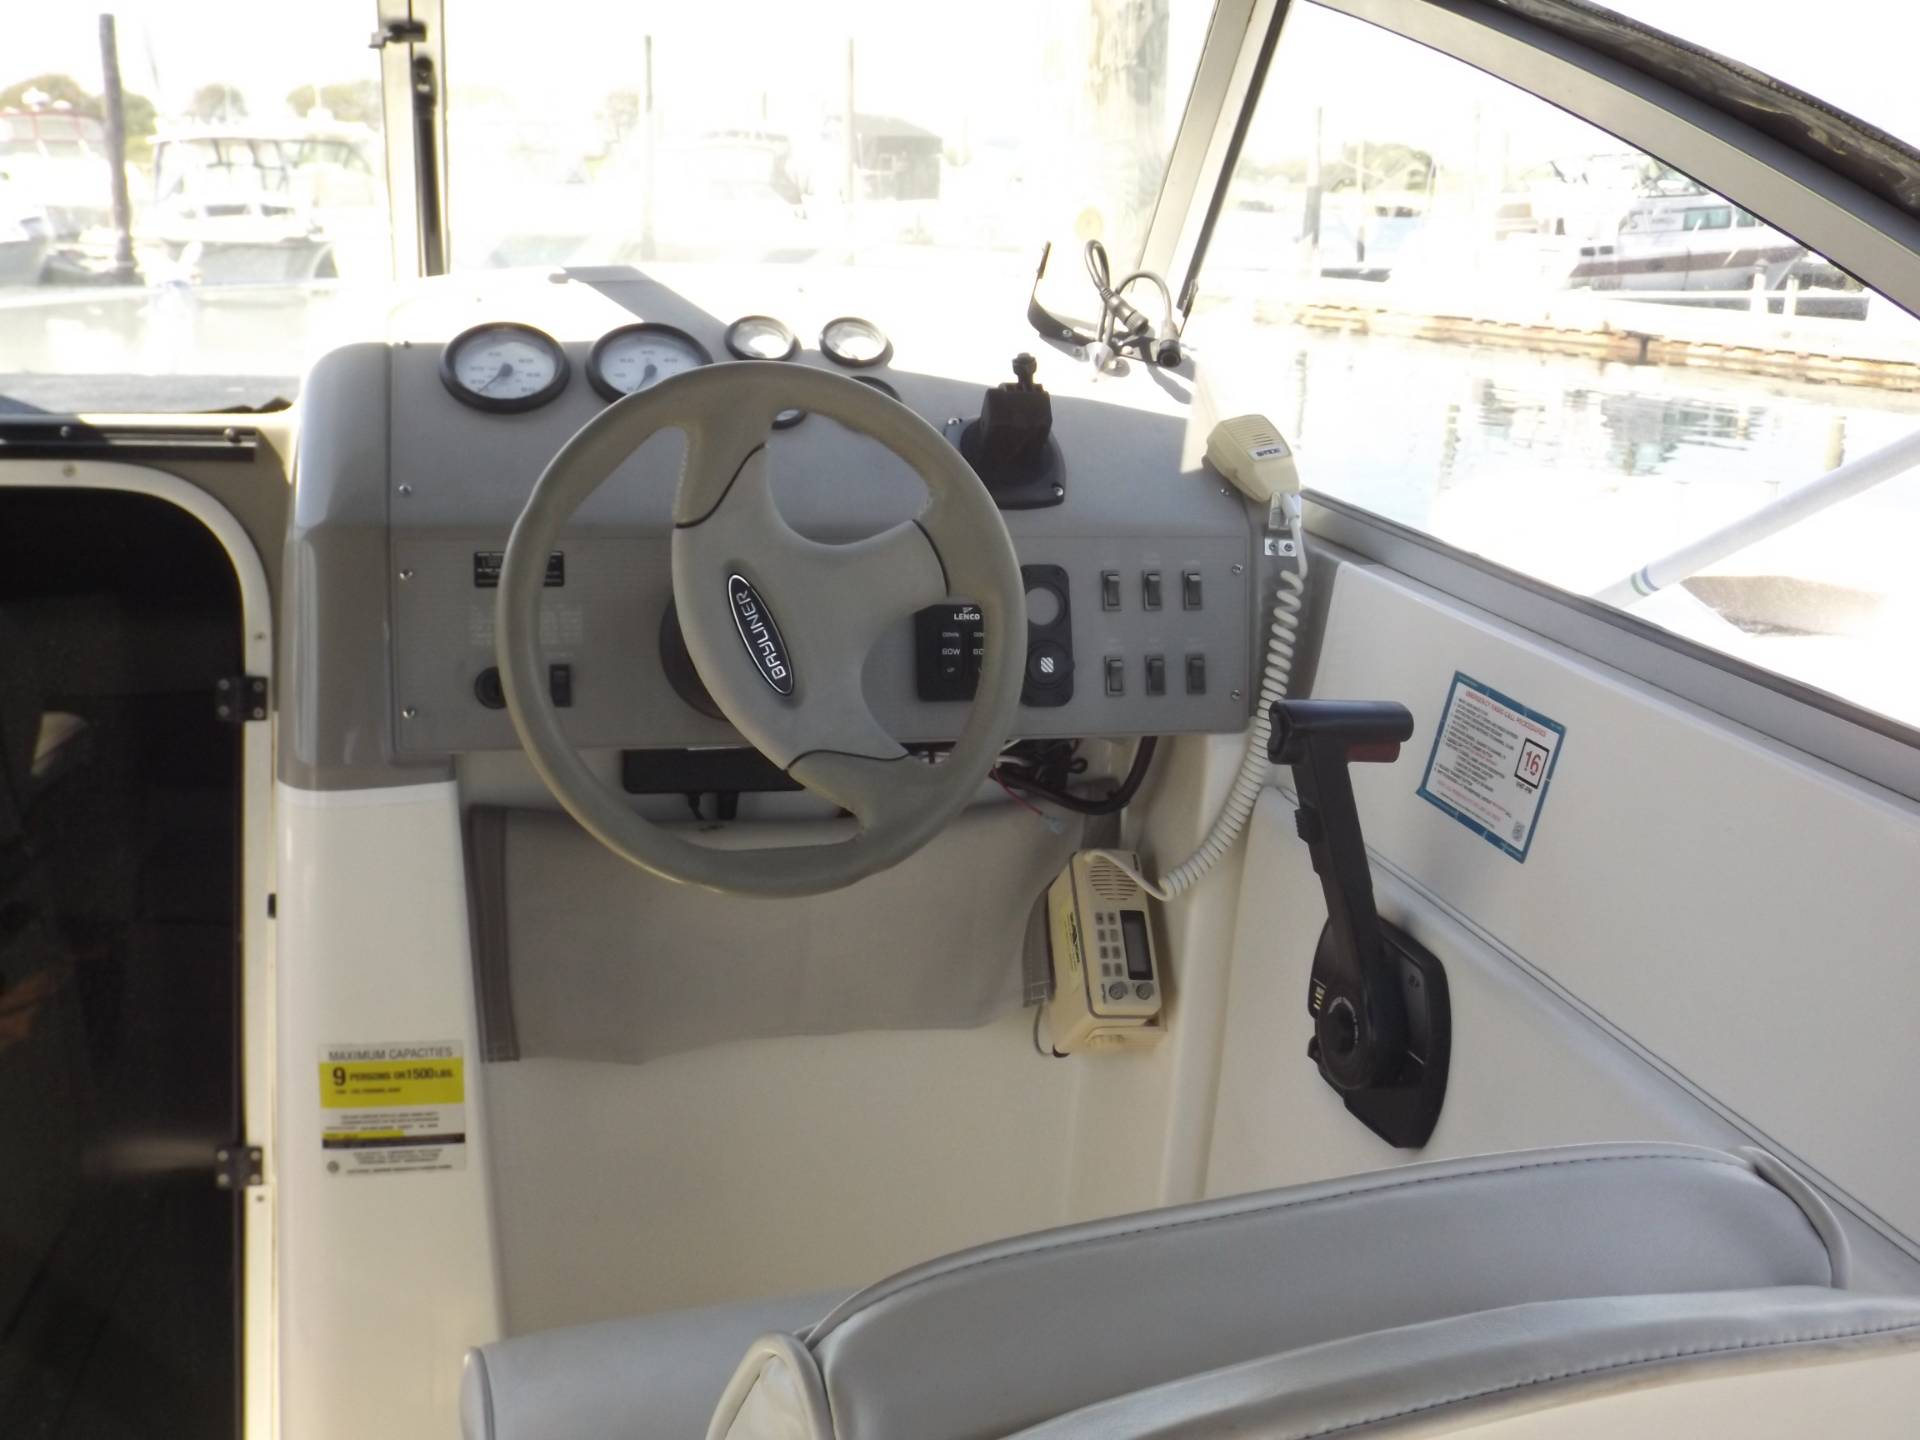 2000 Bayliner 2252 Ciera Express in Oceanside, New York - Photo 9